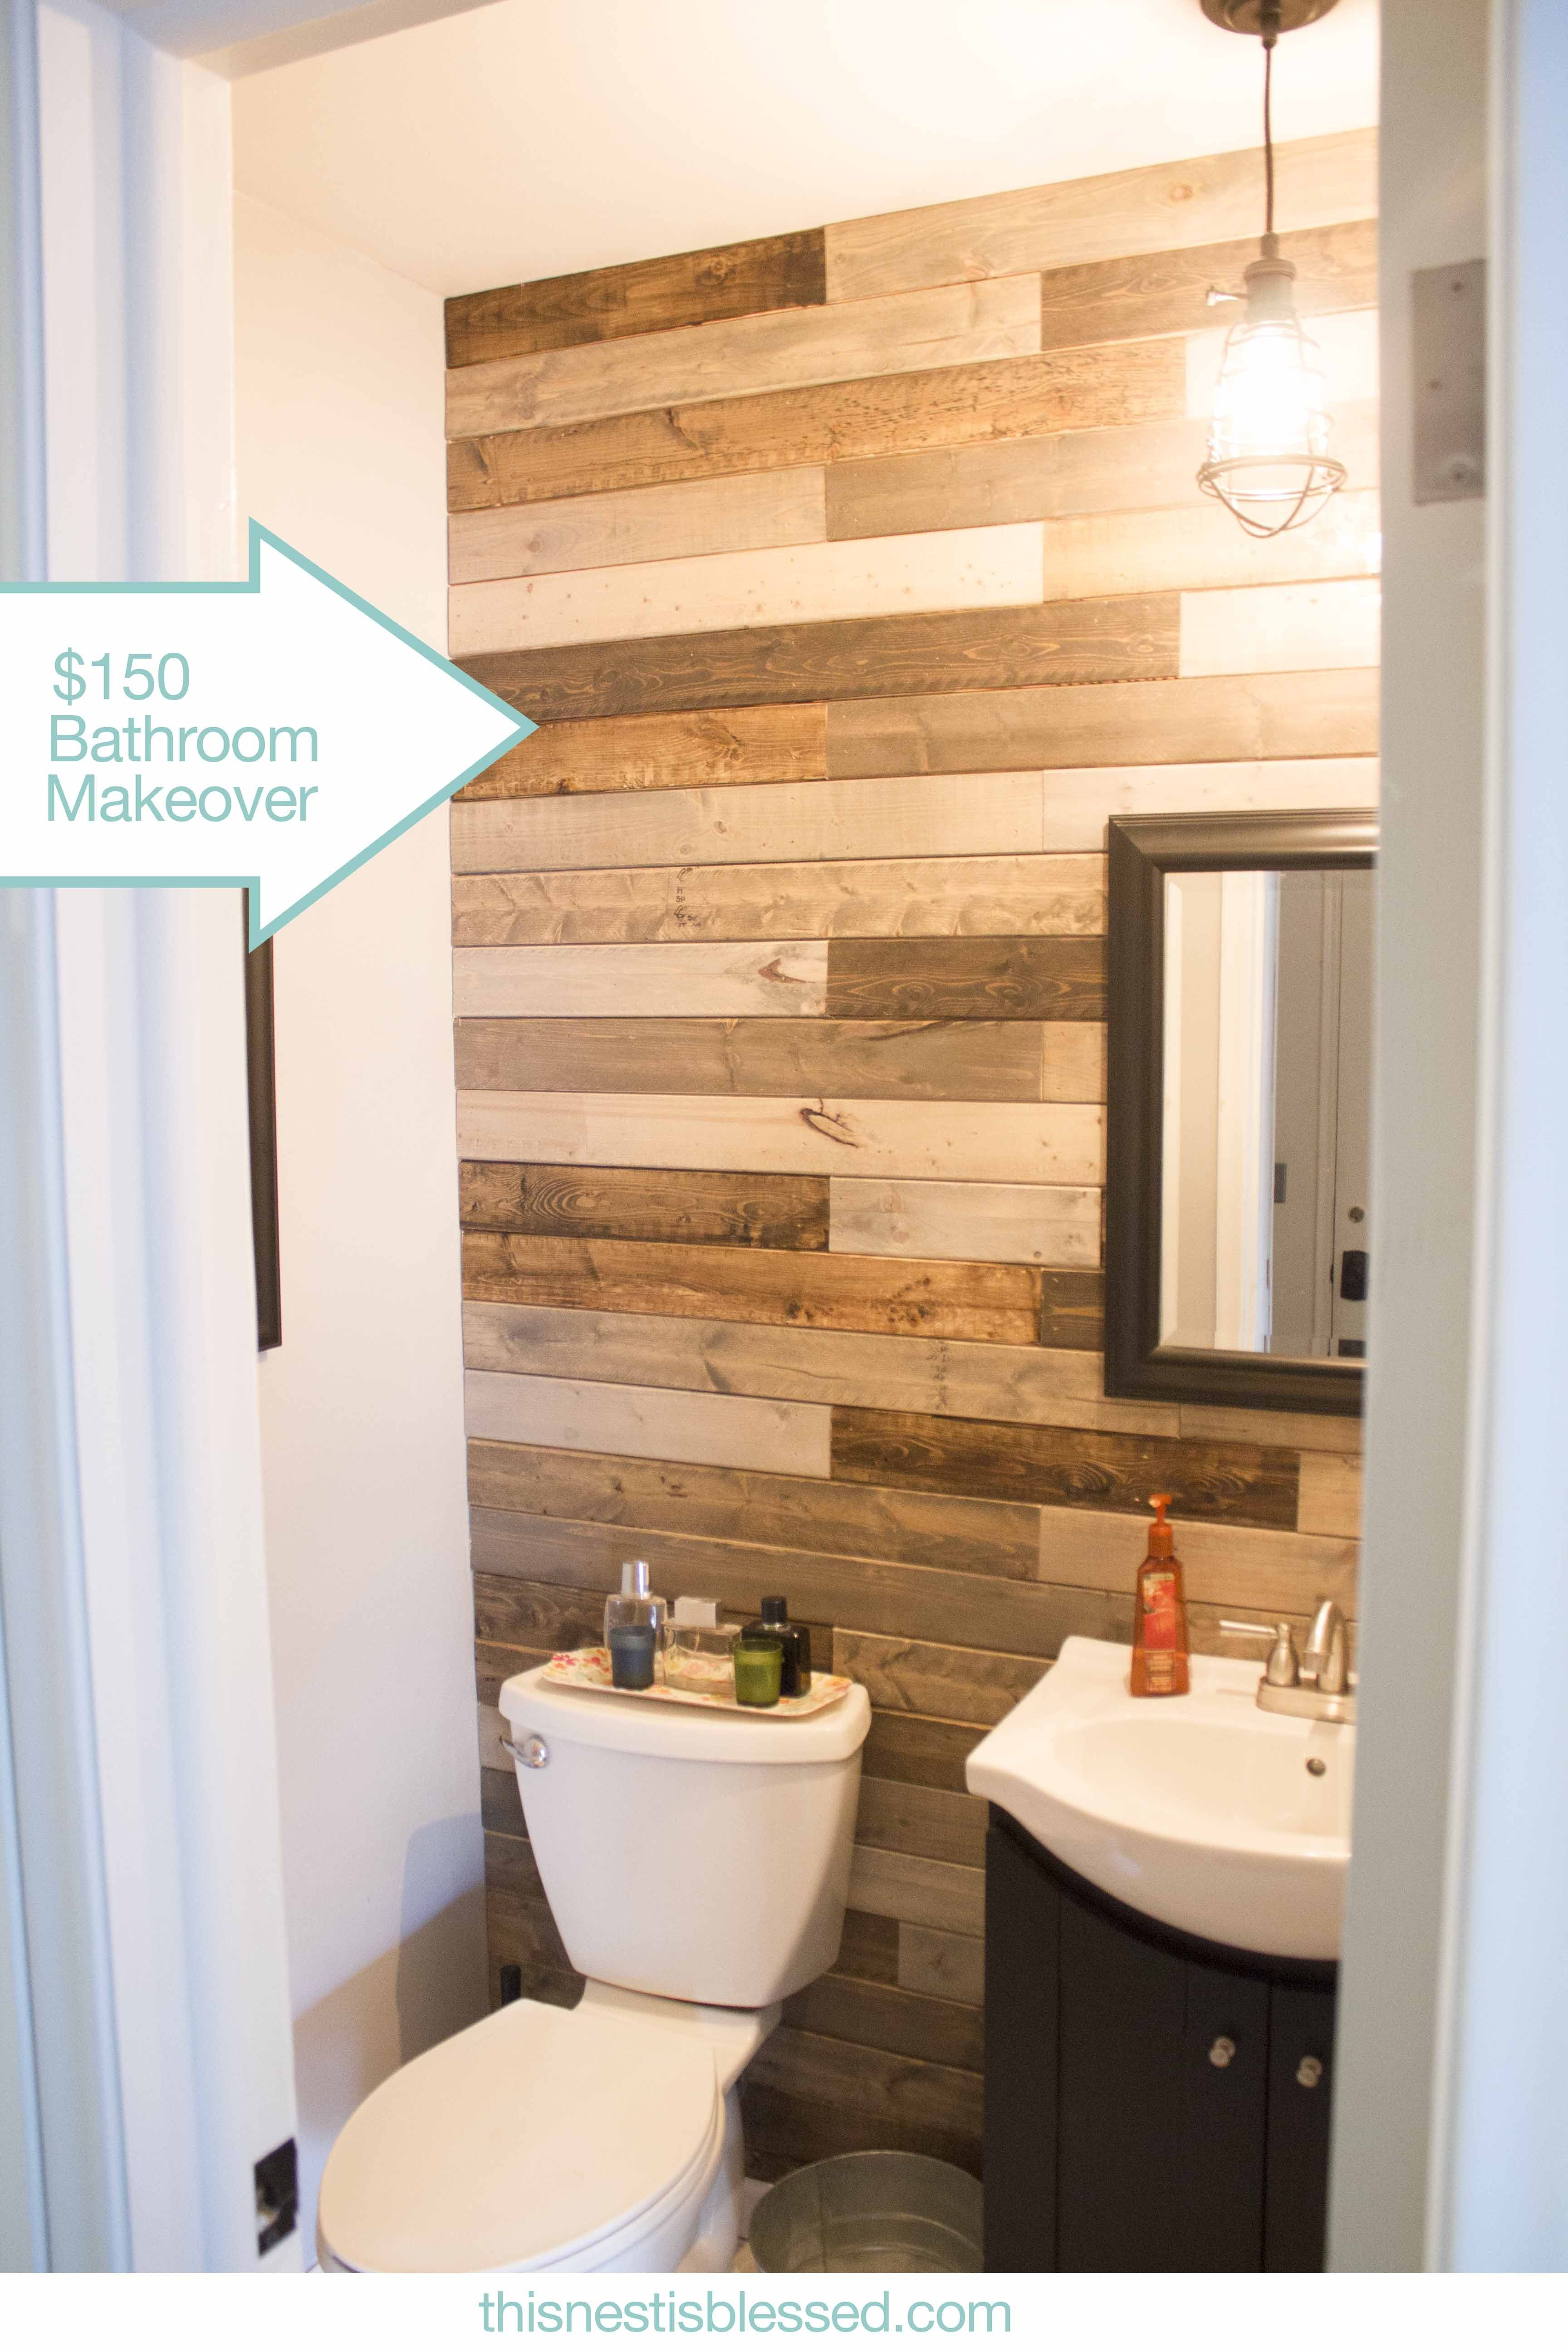 Love the randomness and coloring [family room idea] ::Bathroom Plank ...